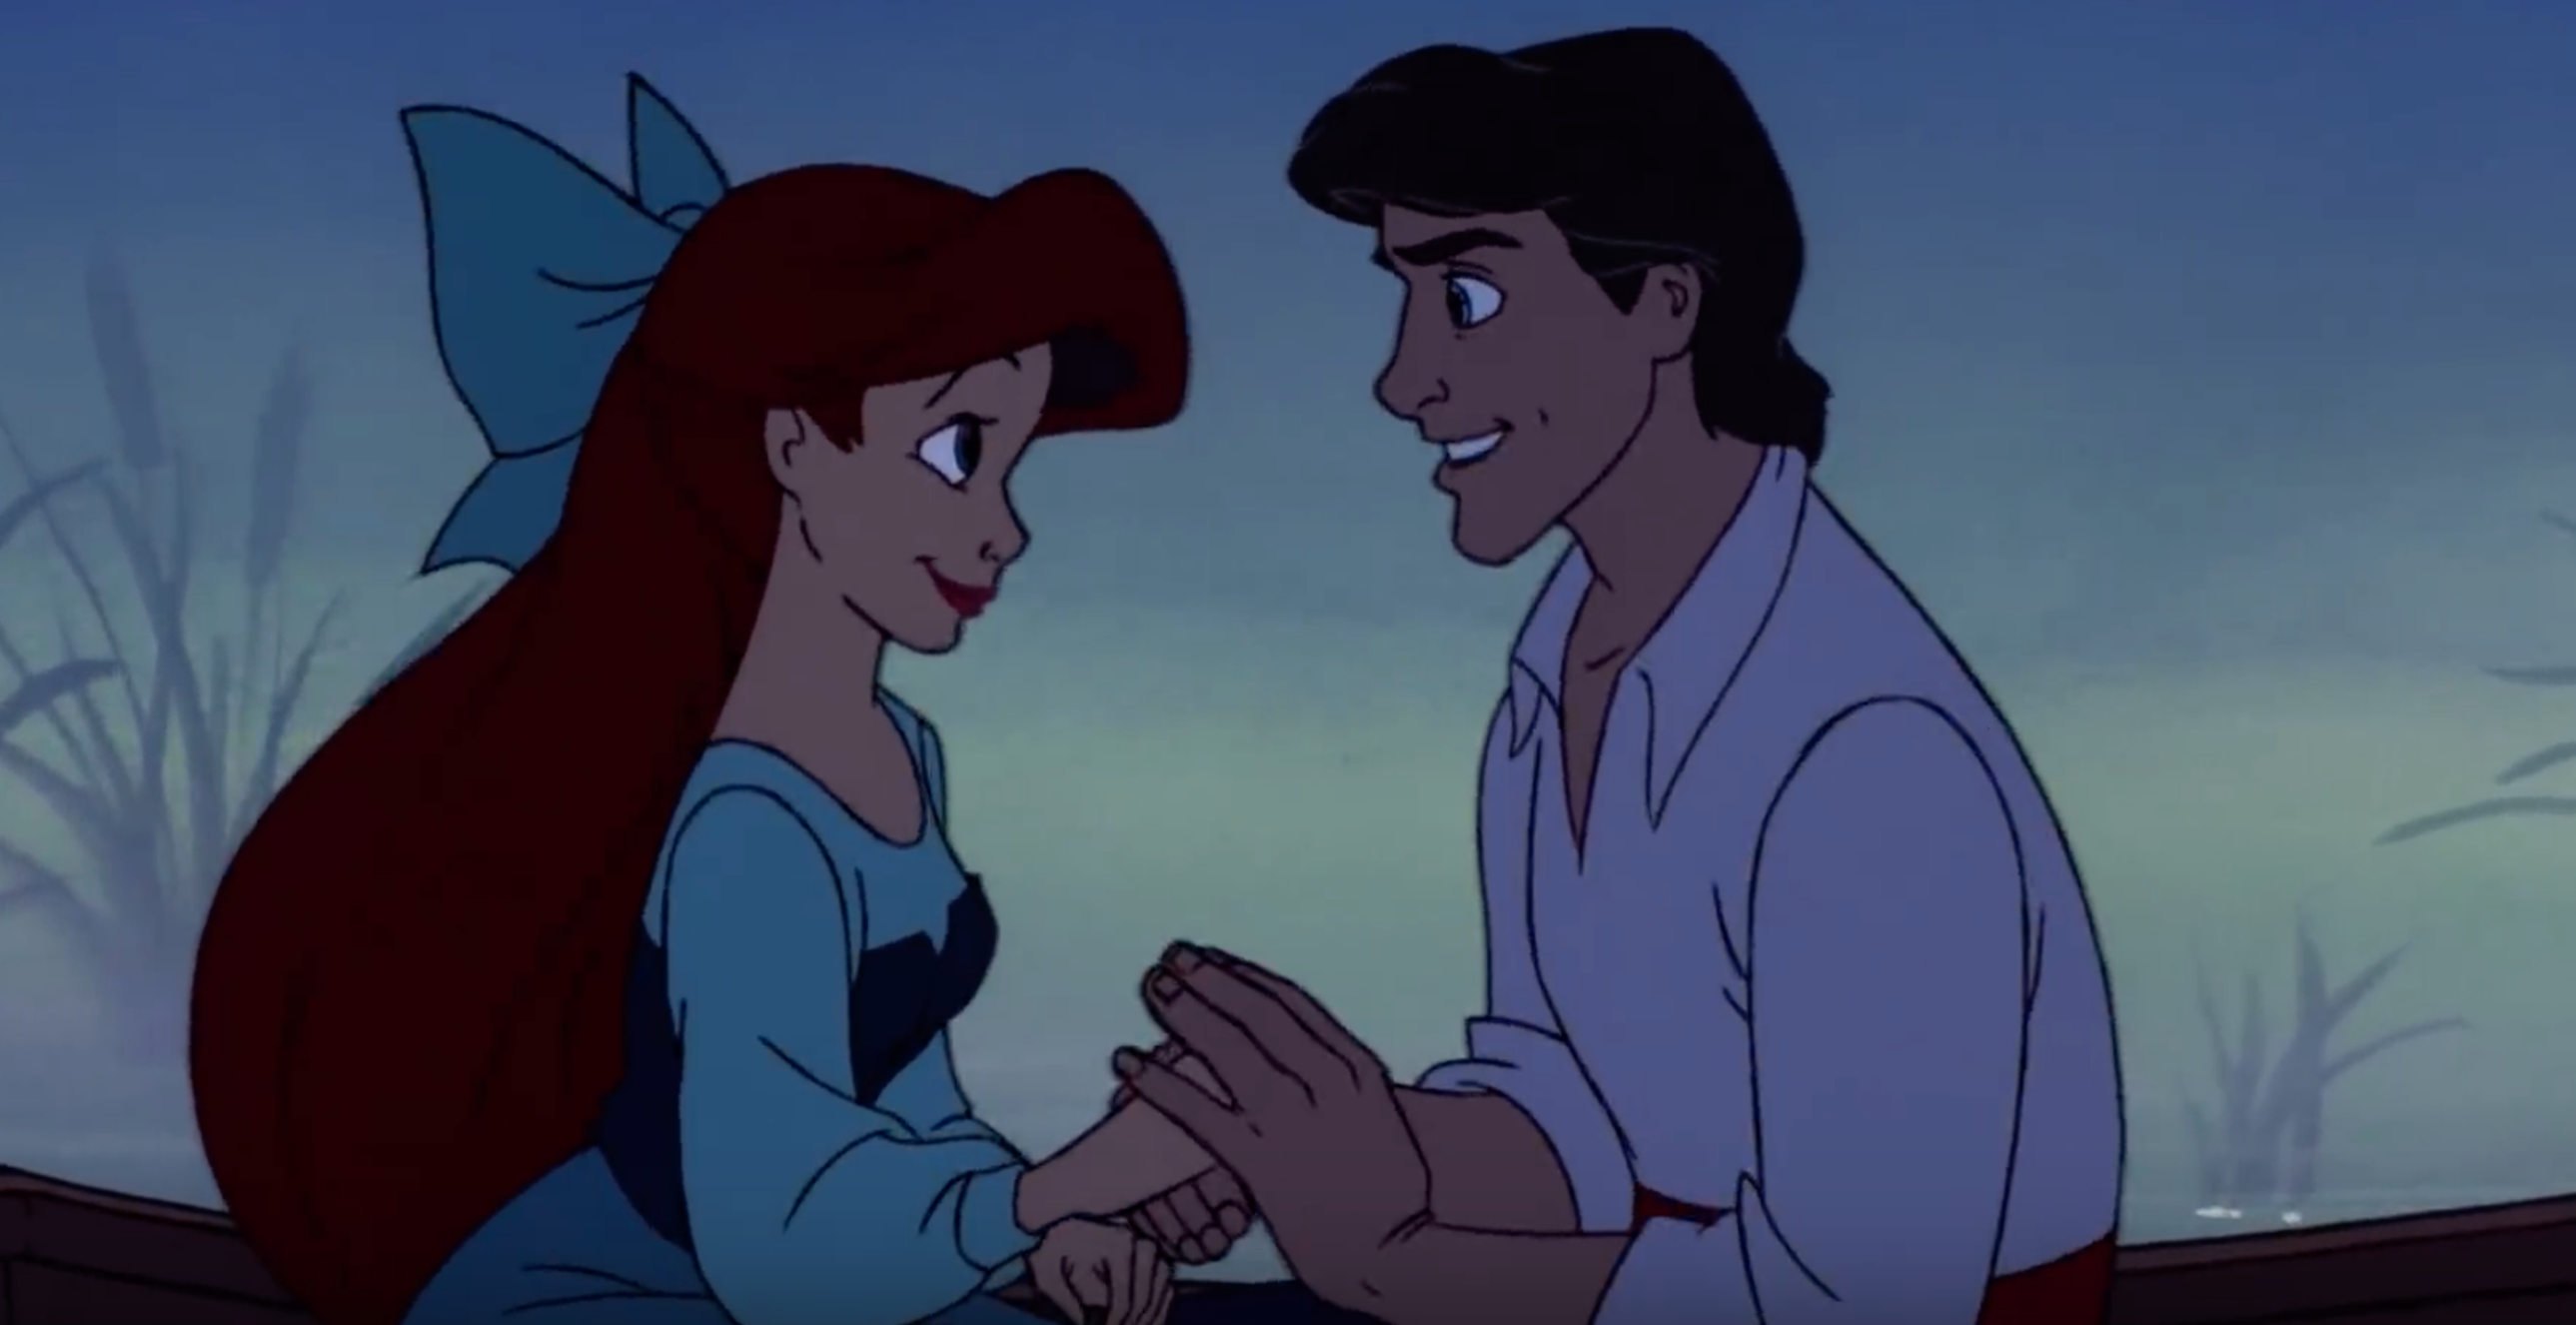 Fancasting older men for the role of The Little Mermaid's Eric needs to stop